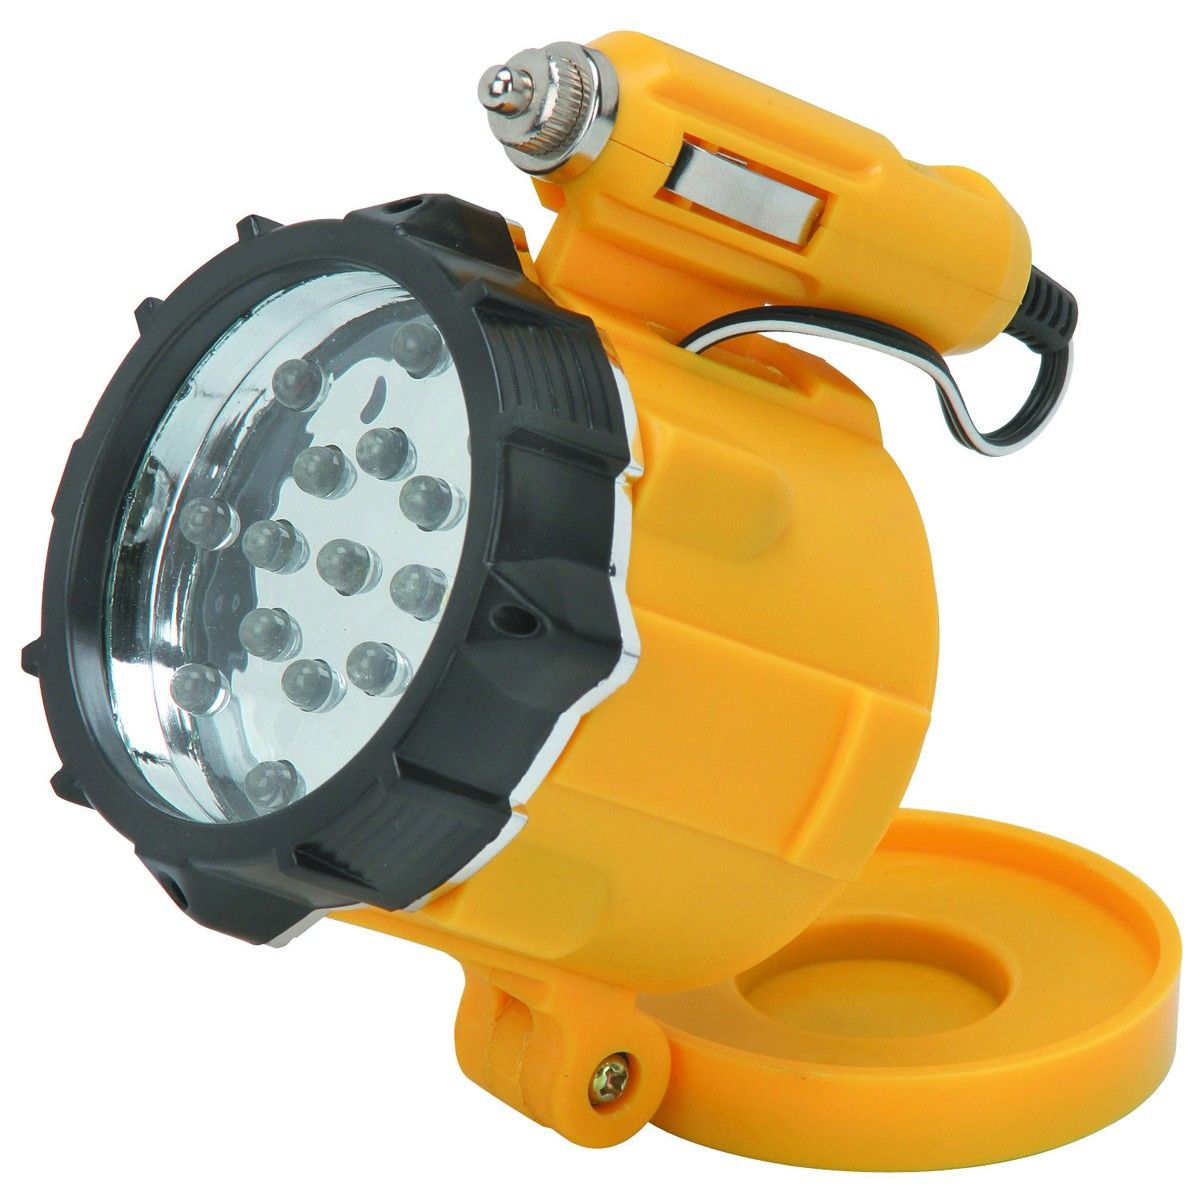 12 Volt Led Mini Spotlight With Magnetic Base Led Light Bulbs Led Lights Led